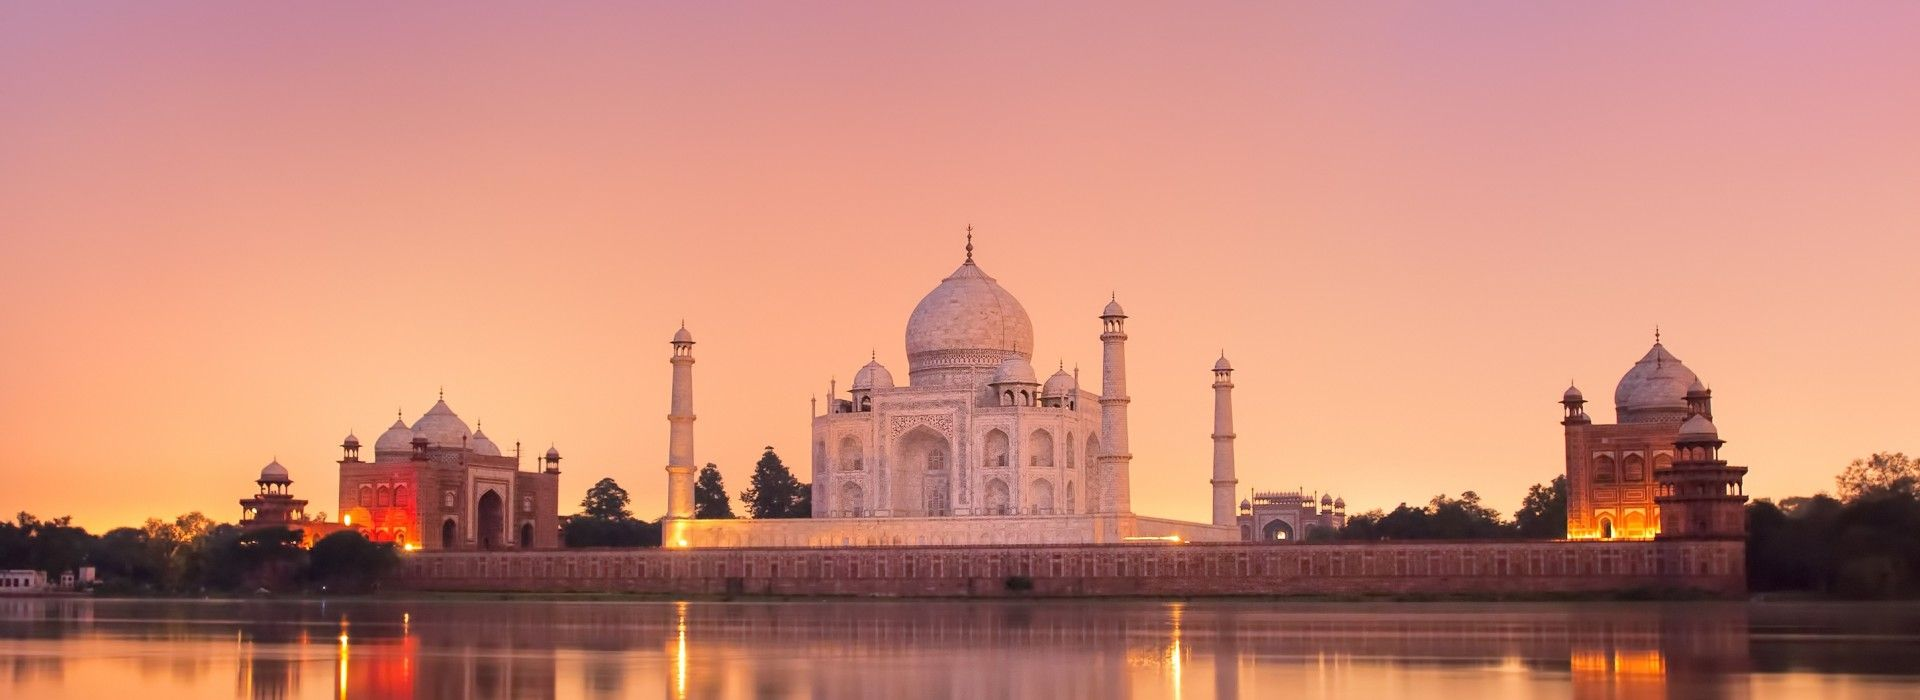 Deserts and canyons Tours in Jaipur